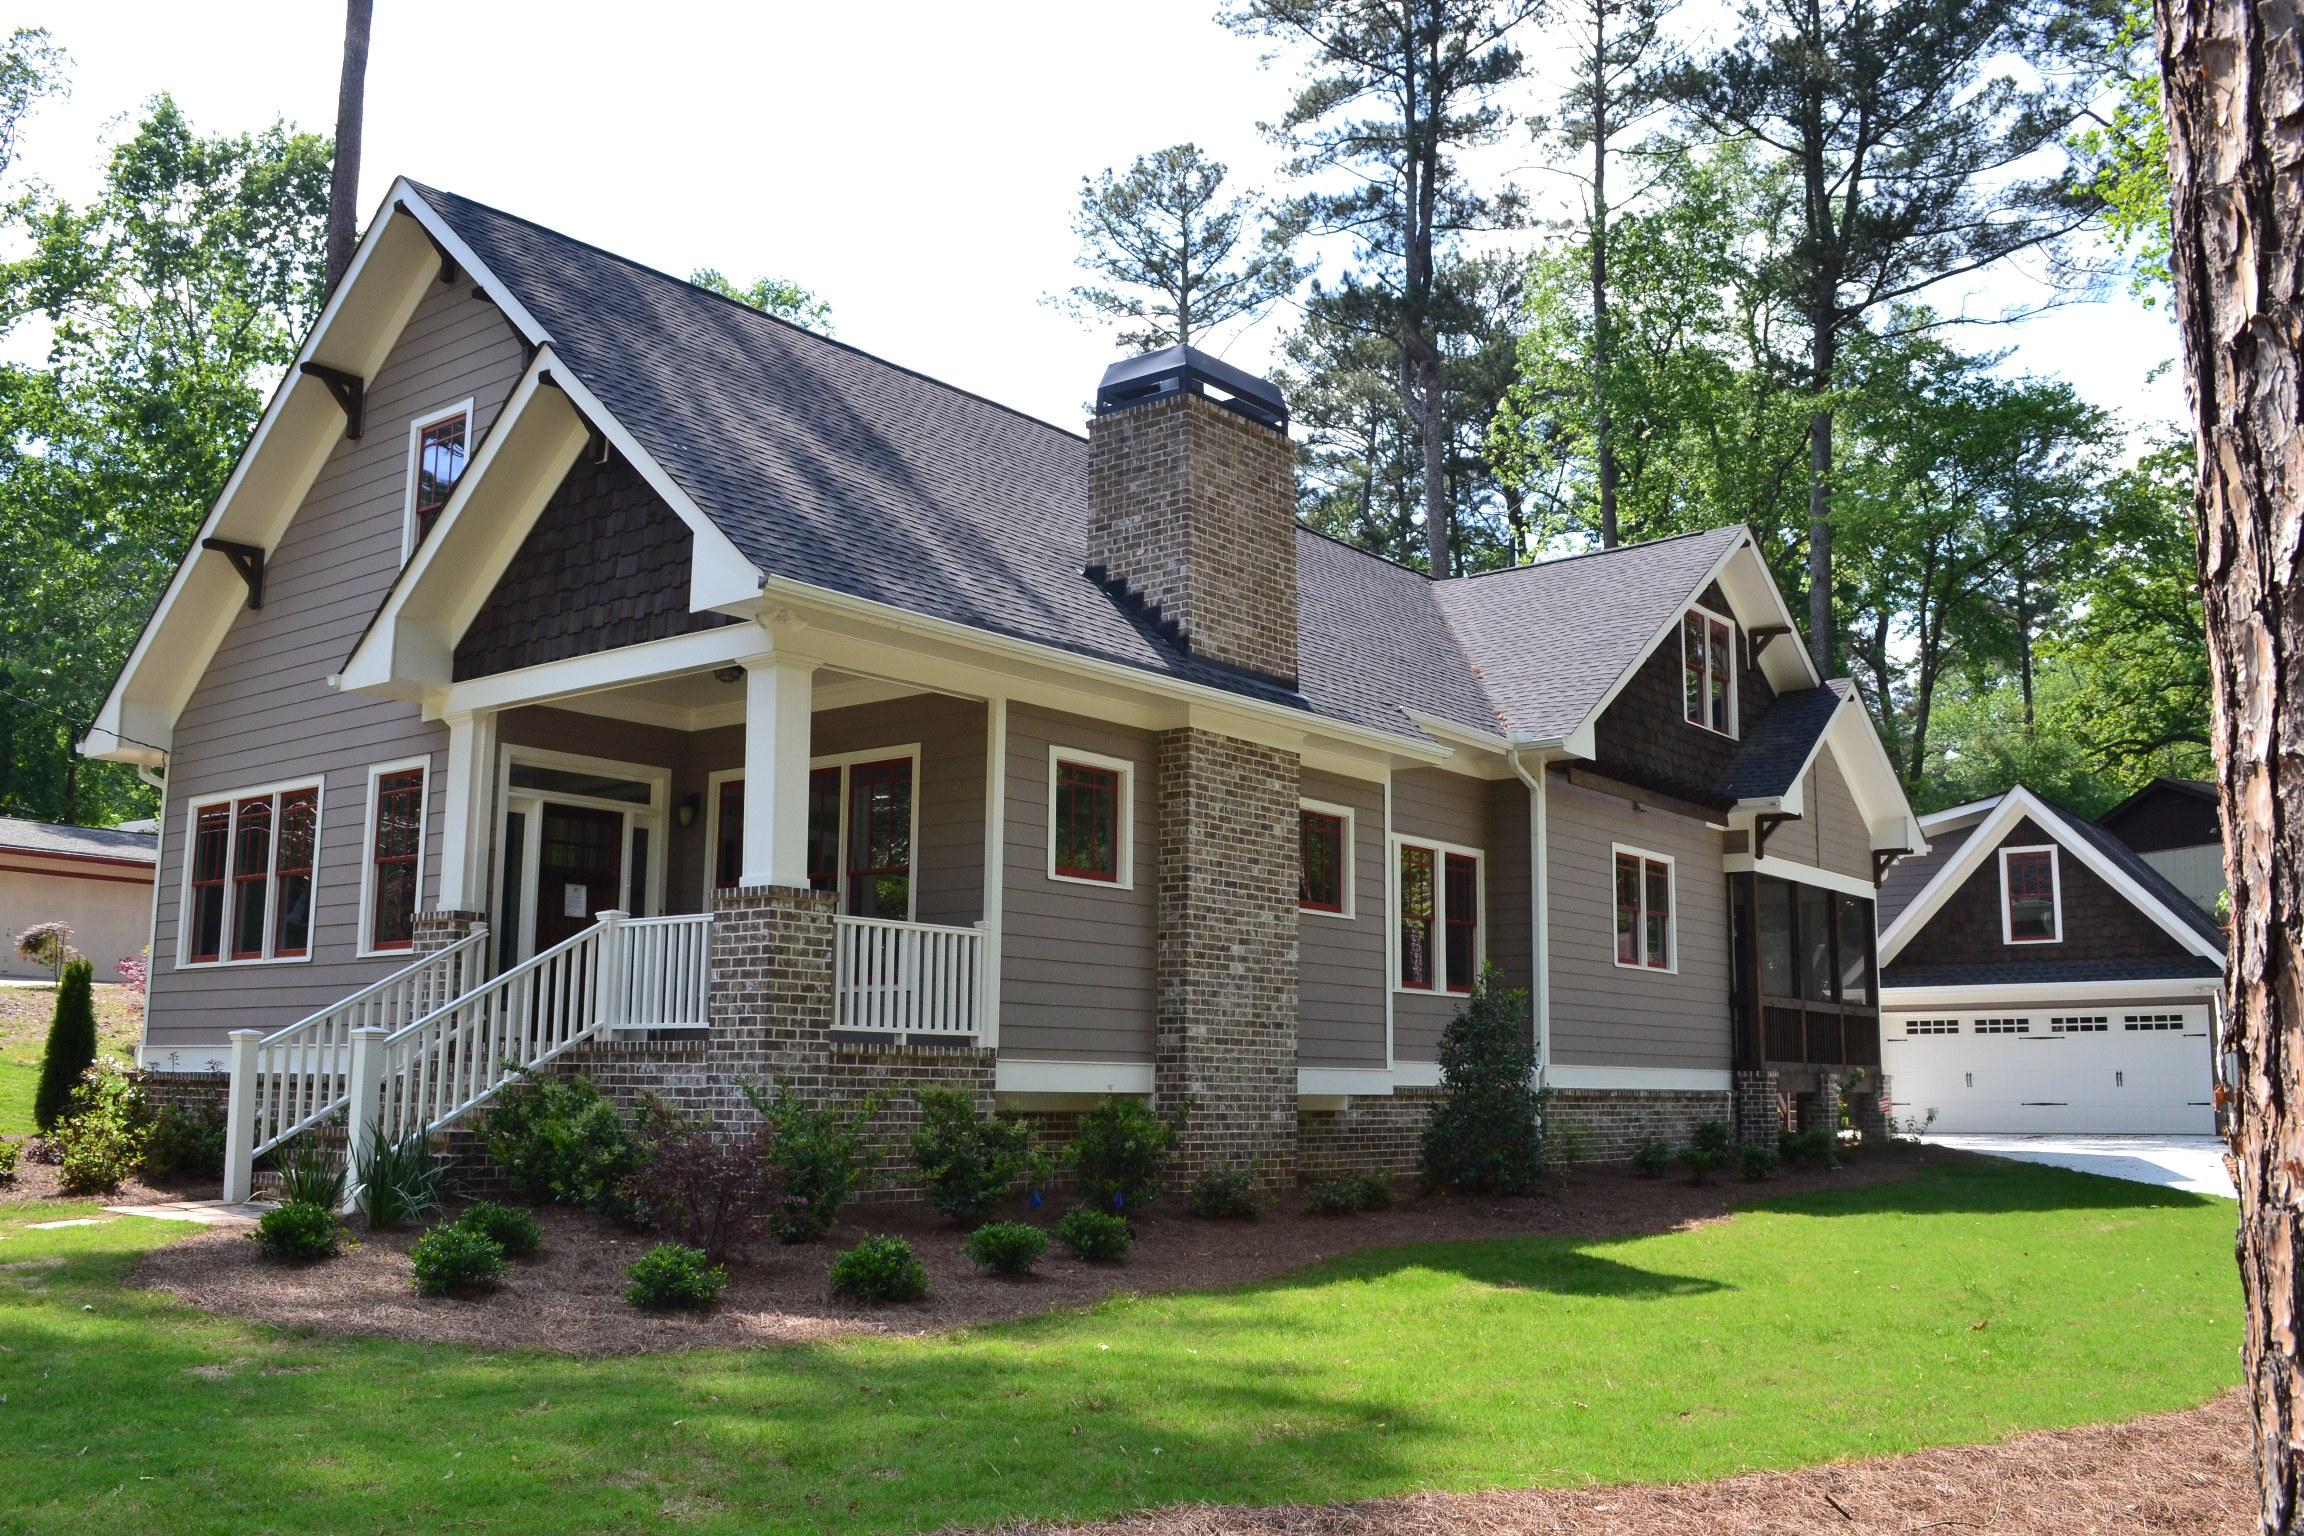 Small1a Vision Pointe Homes